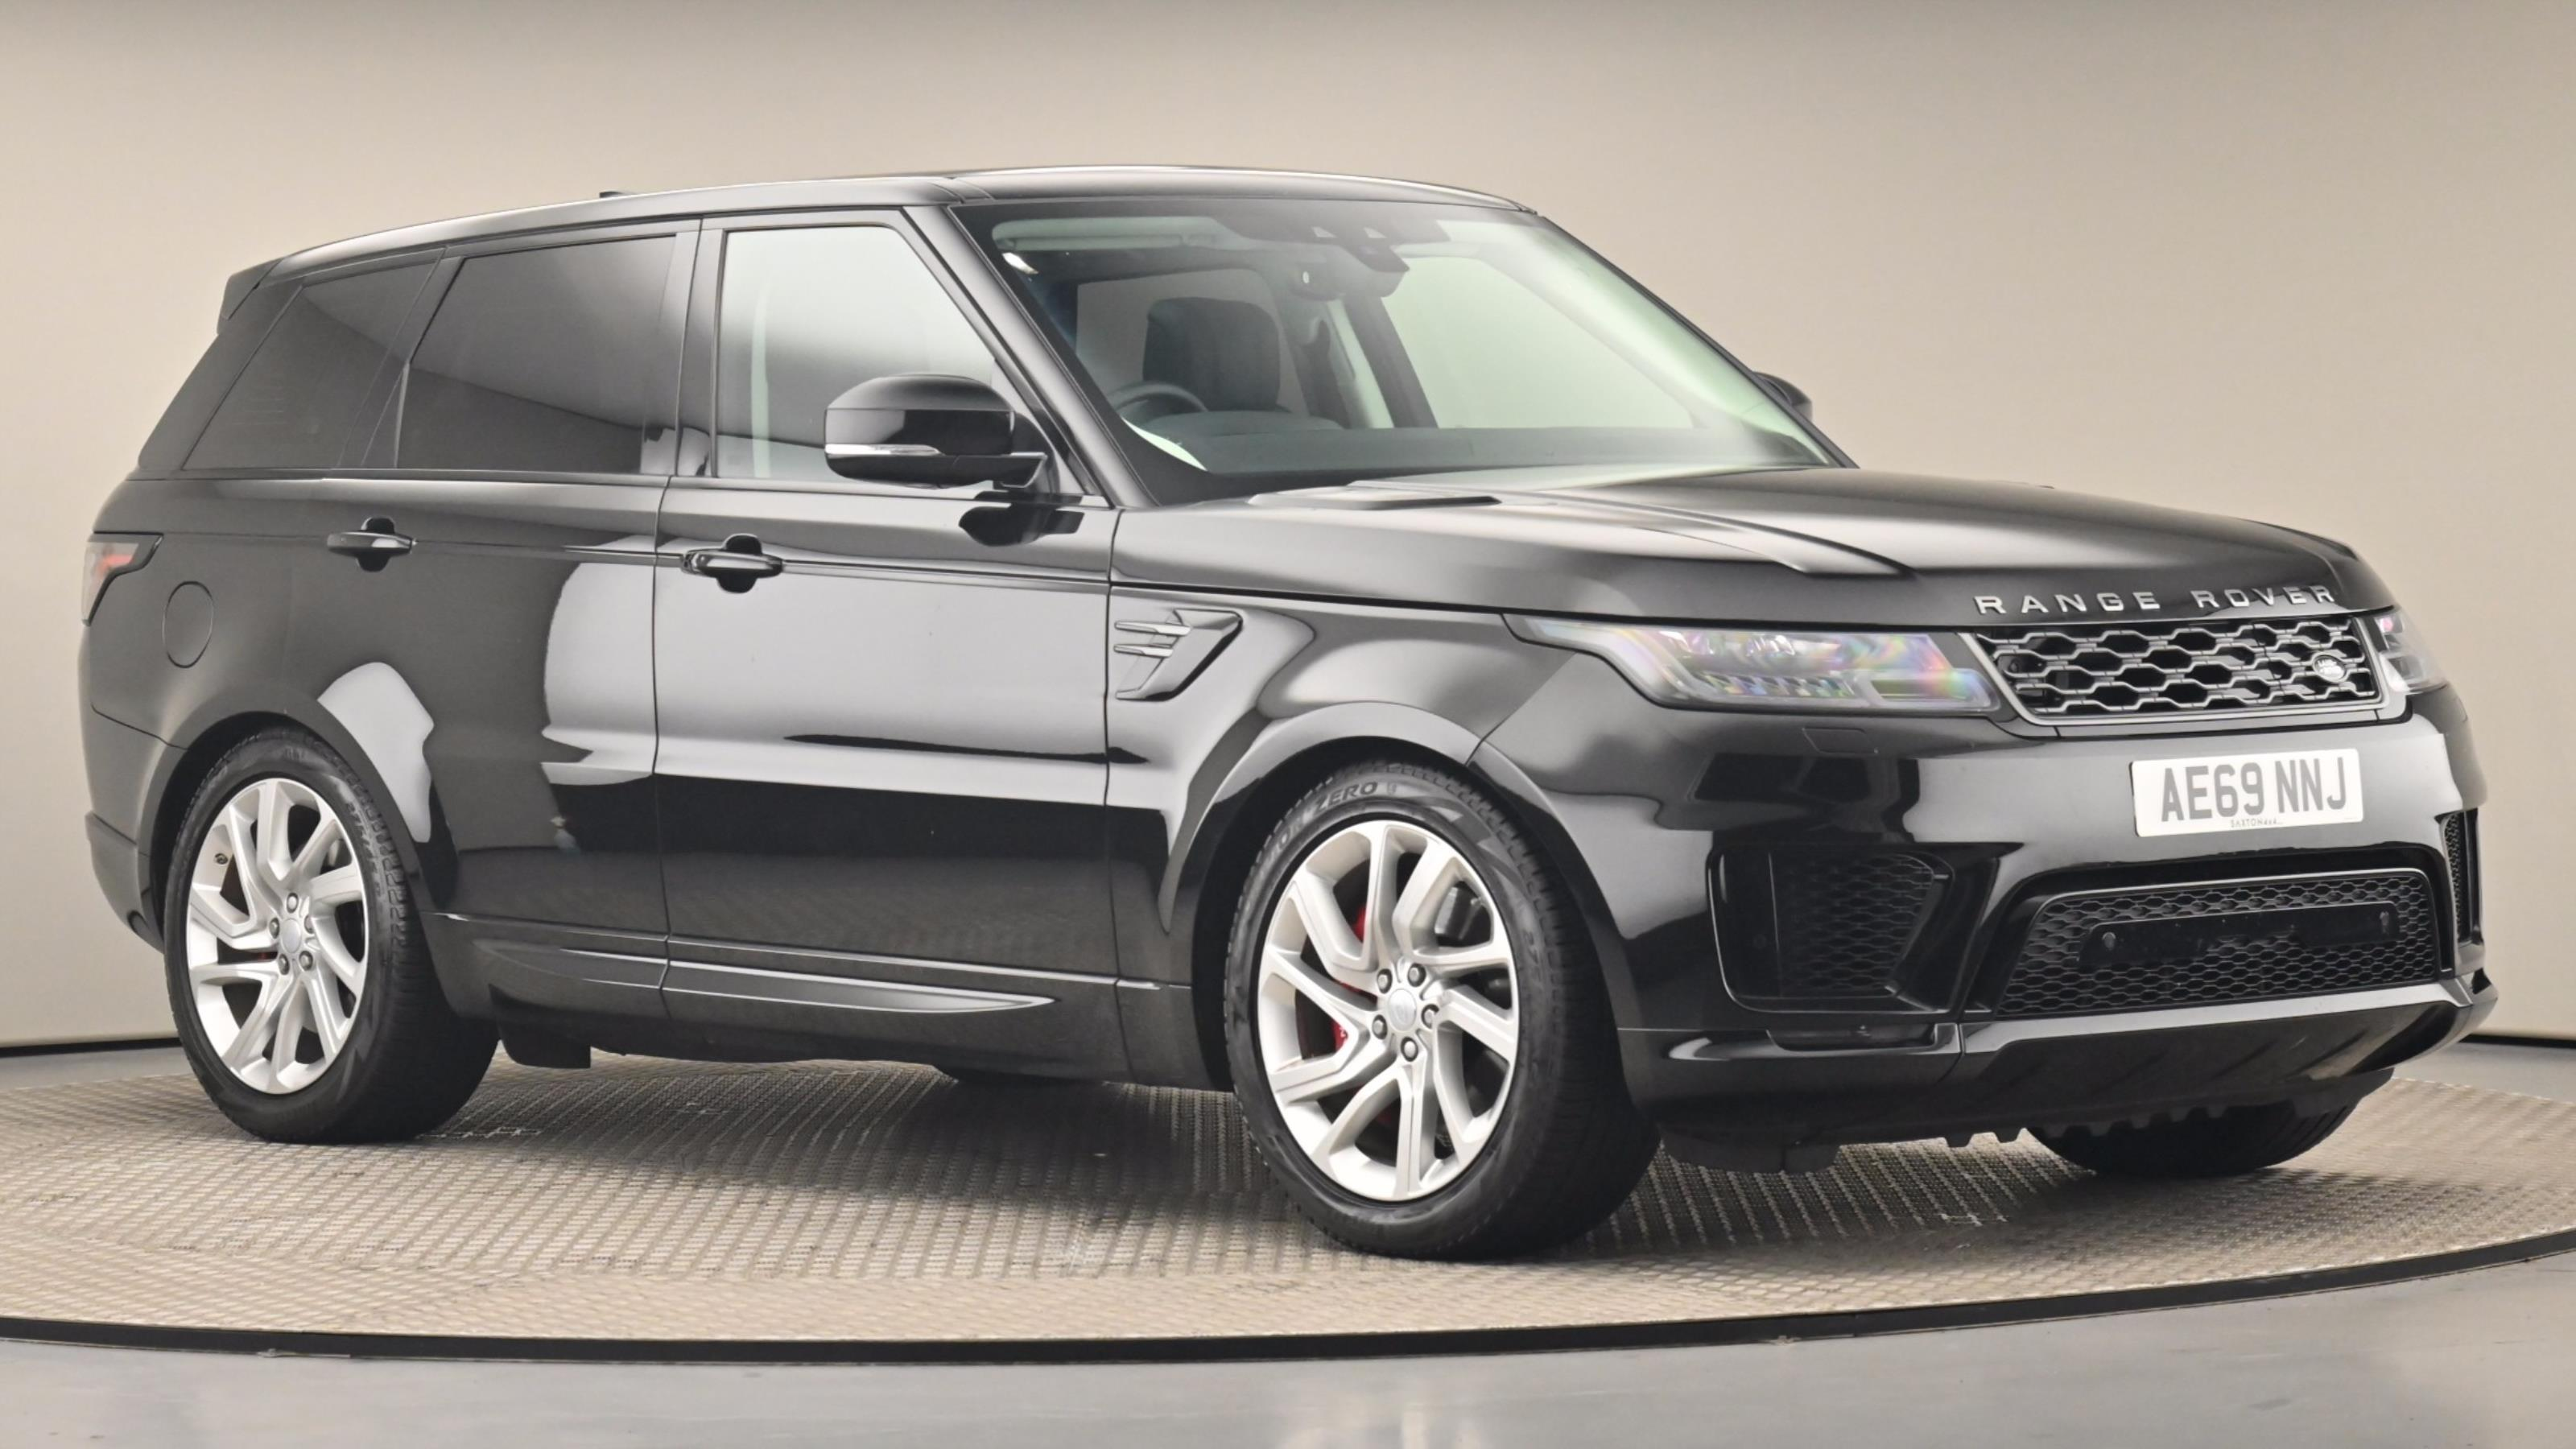 Used 2019 Land Rover RANGE ROVER SPORT 2.0 P400e HSE Dynamic 5dr Auto BLACK at Saxton4x4